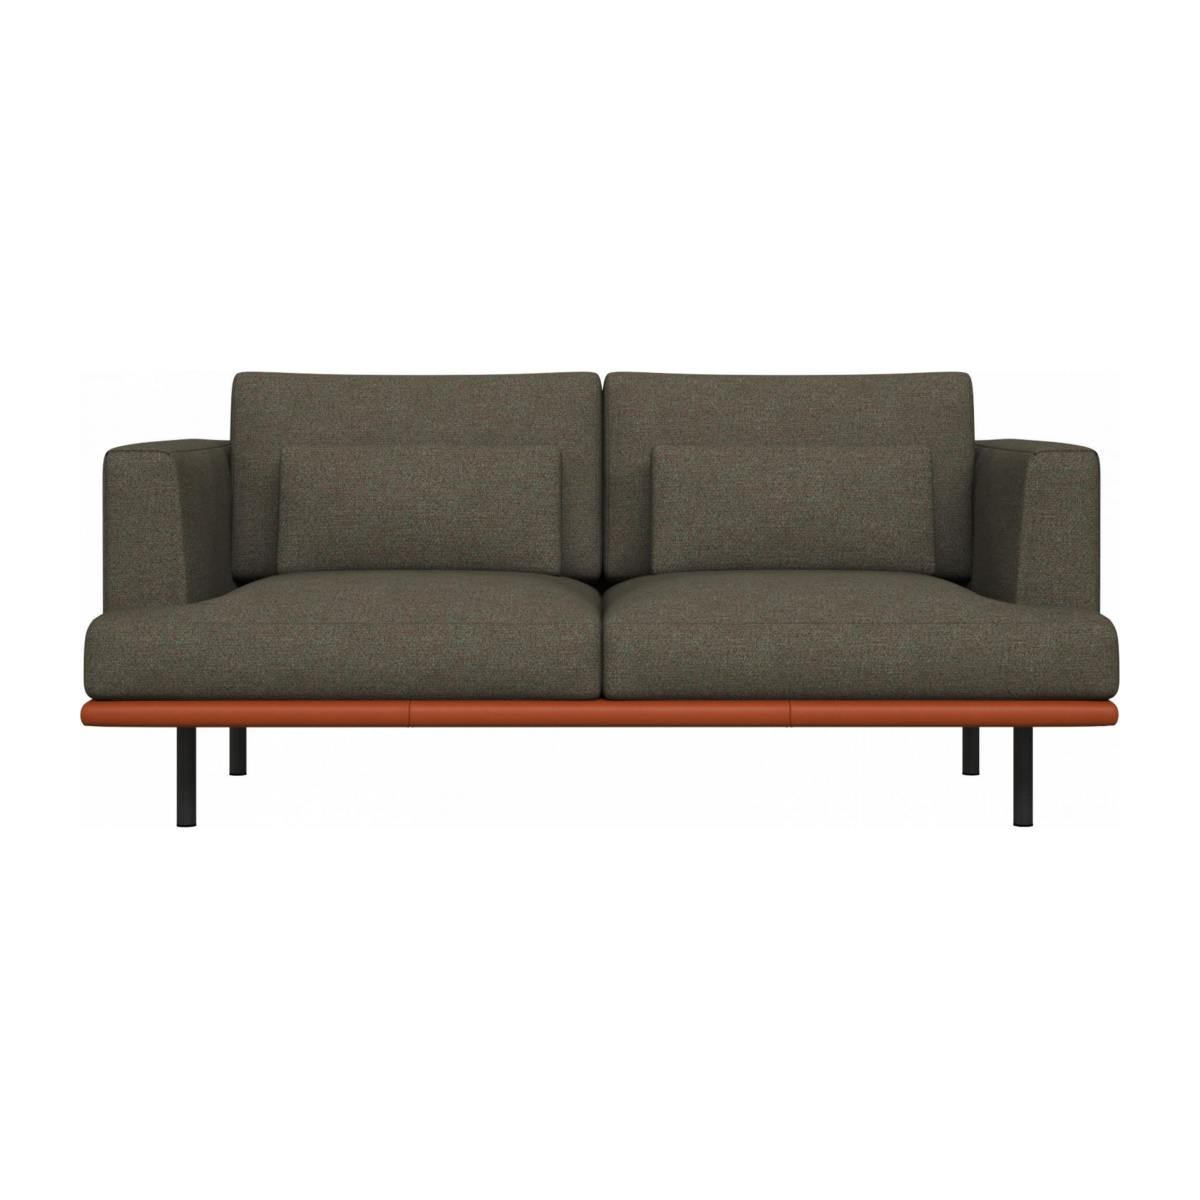 2 seater sofa in Lecce fabric, slade grey with base in brown leather n°1